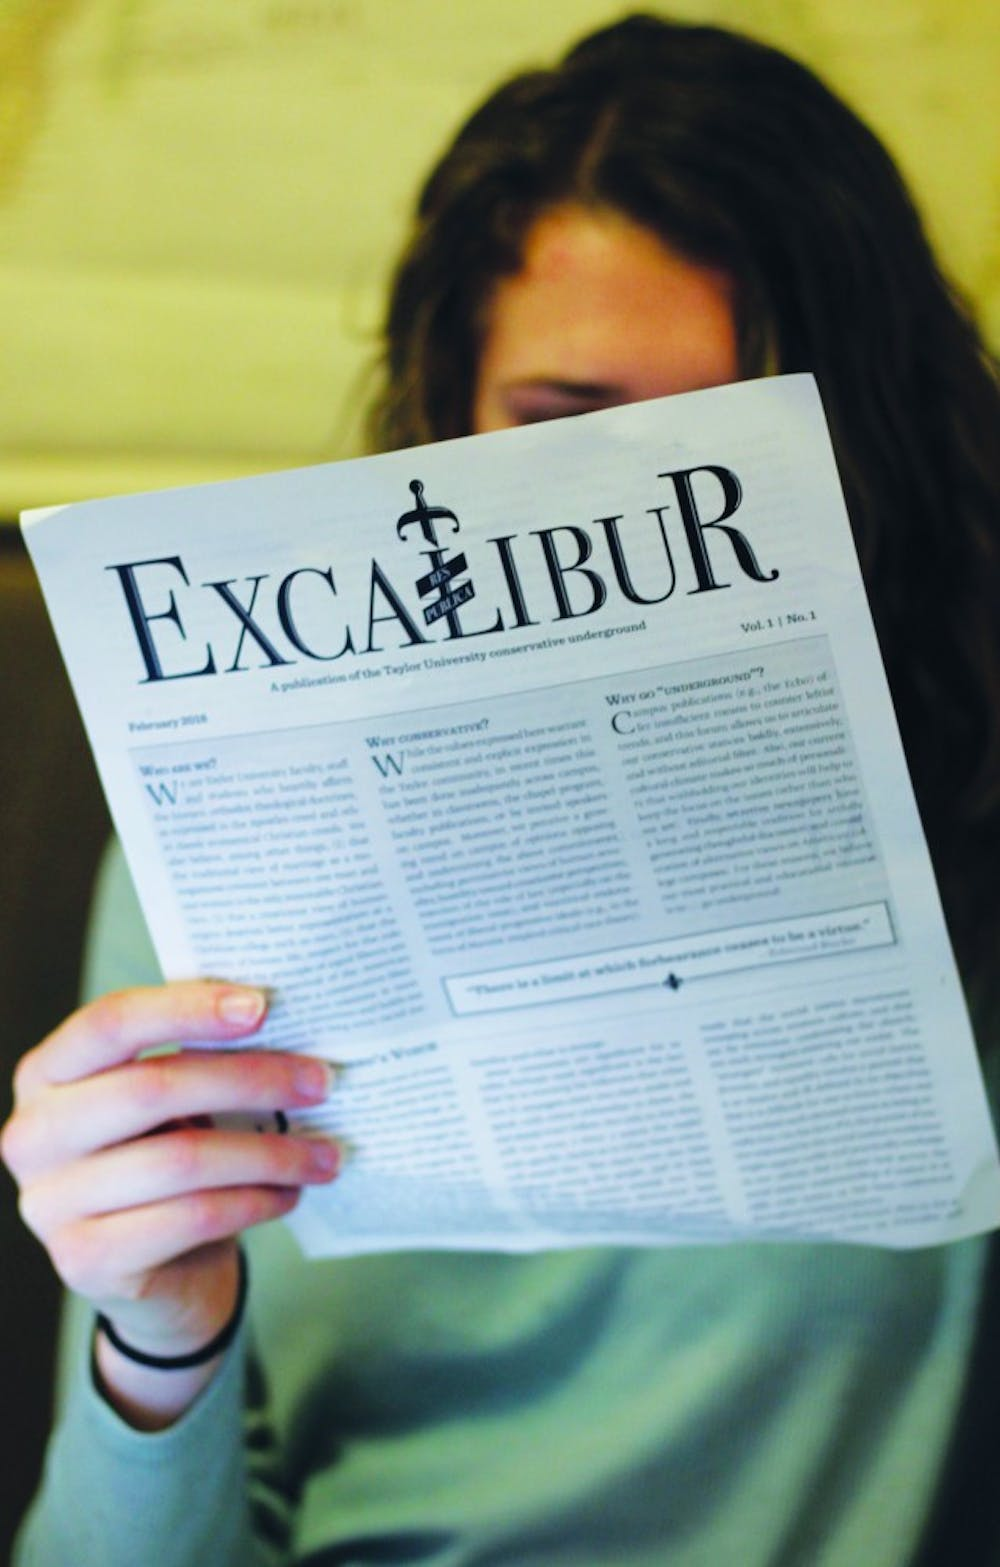 Our View: Editorial Board weighs in regarding Excalibur